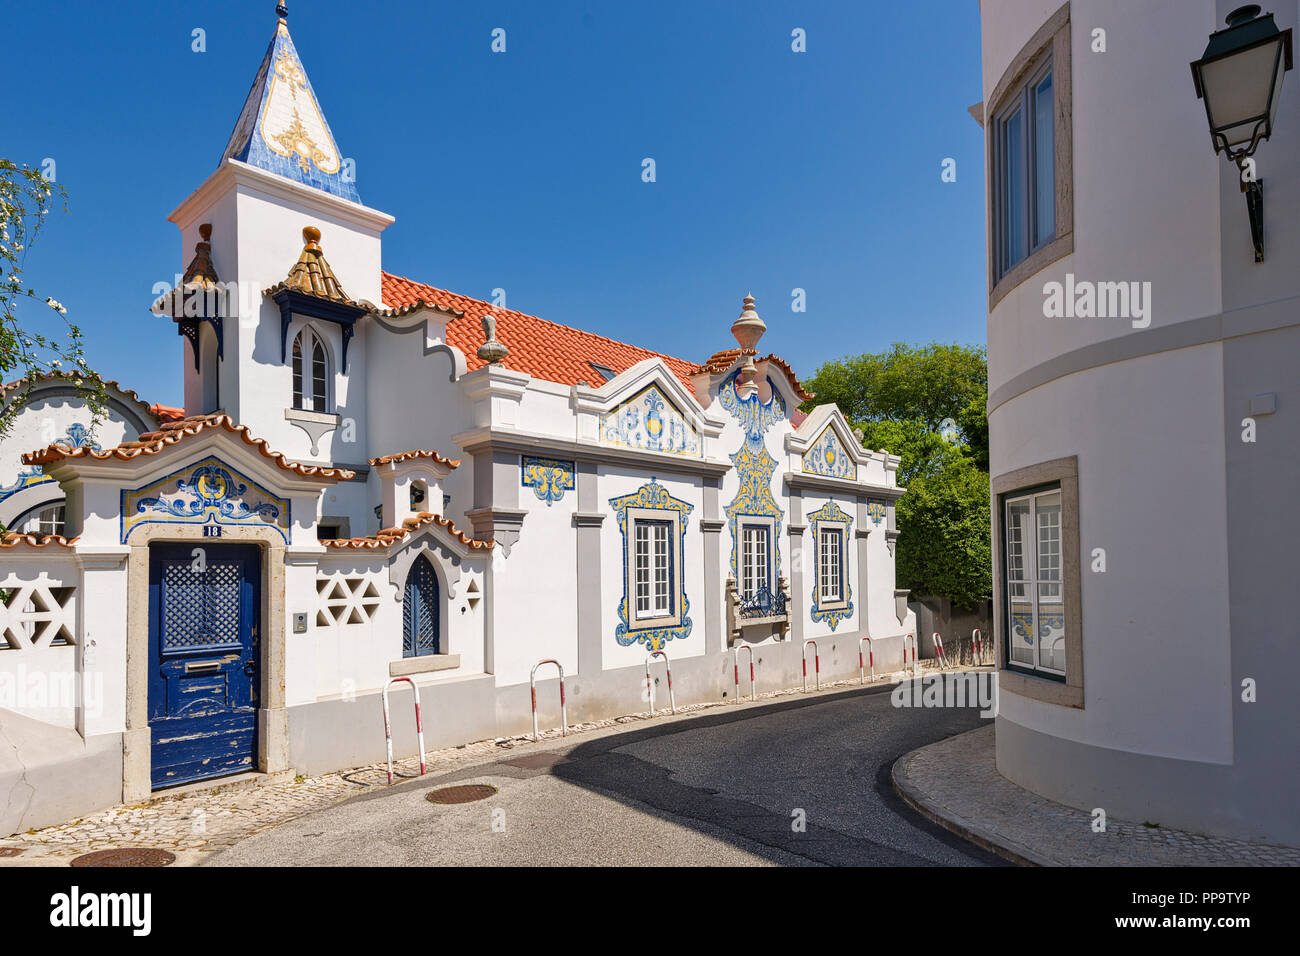 Cascais, Portugal, ancient aristocratic villa with facades decorated with yellow and blue azulejos - Stock Image